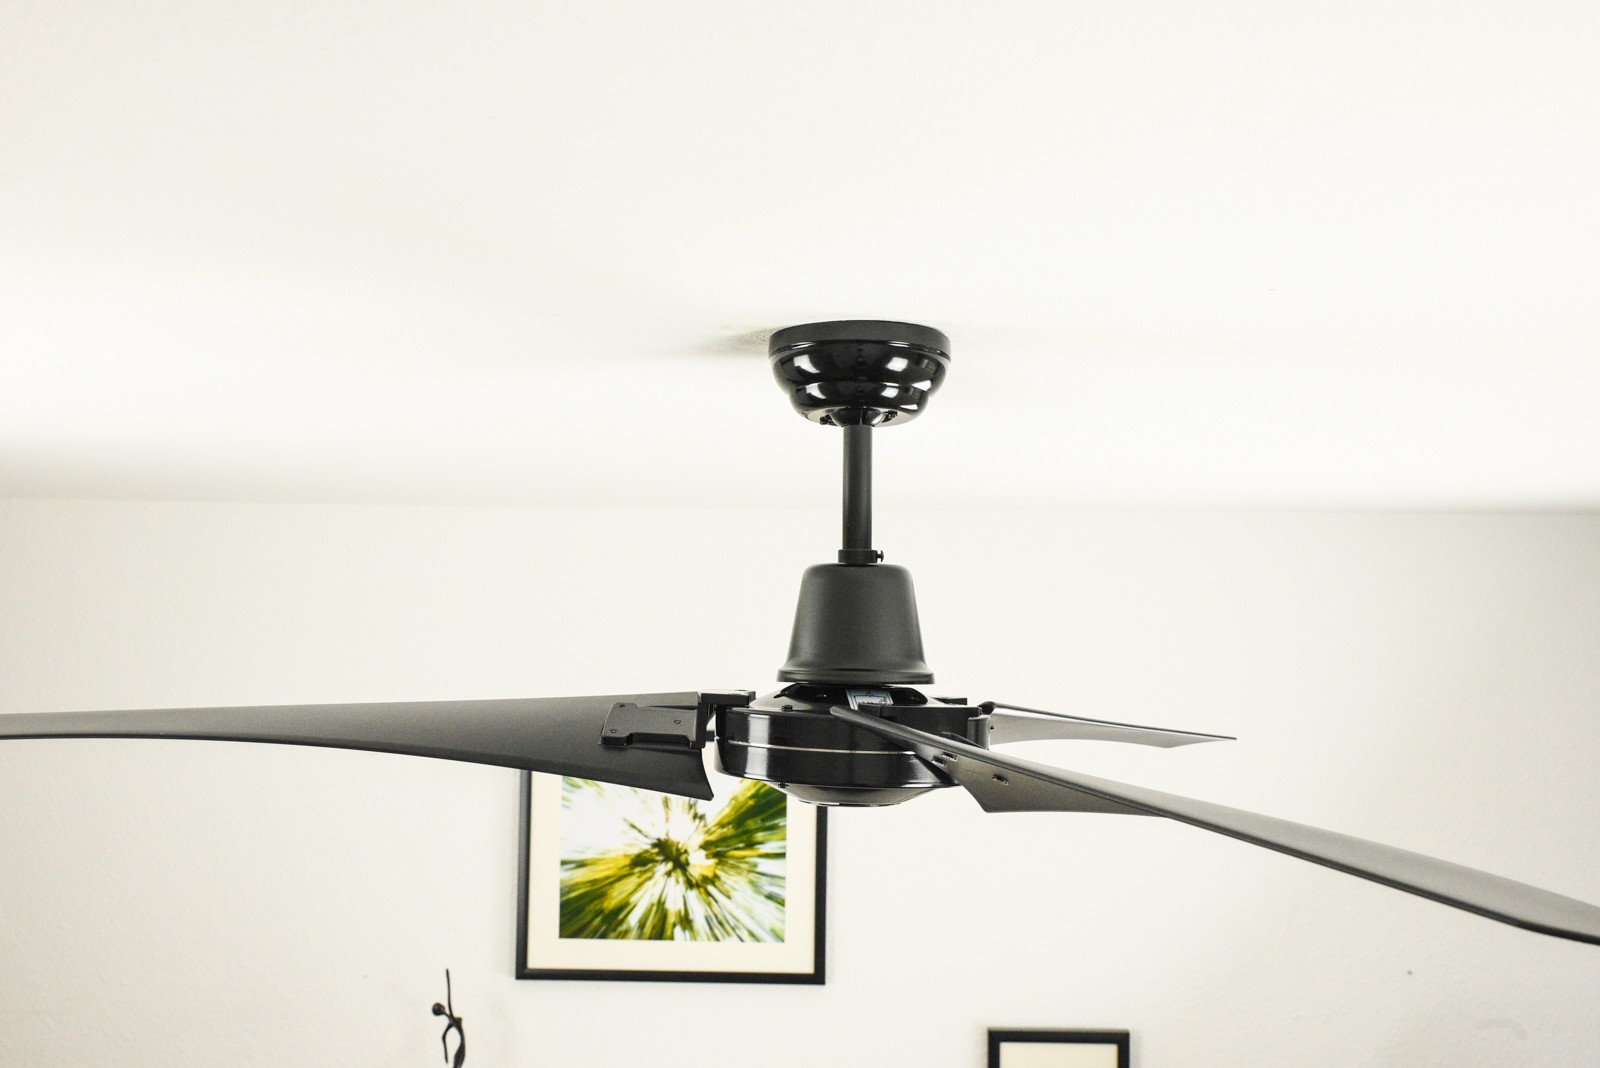 Industrial Fan Switch : Industrial ceiling fan vourdries black with wall control